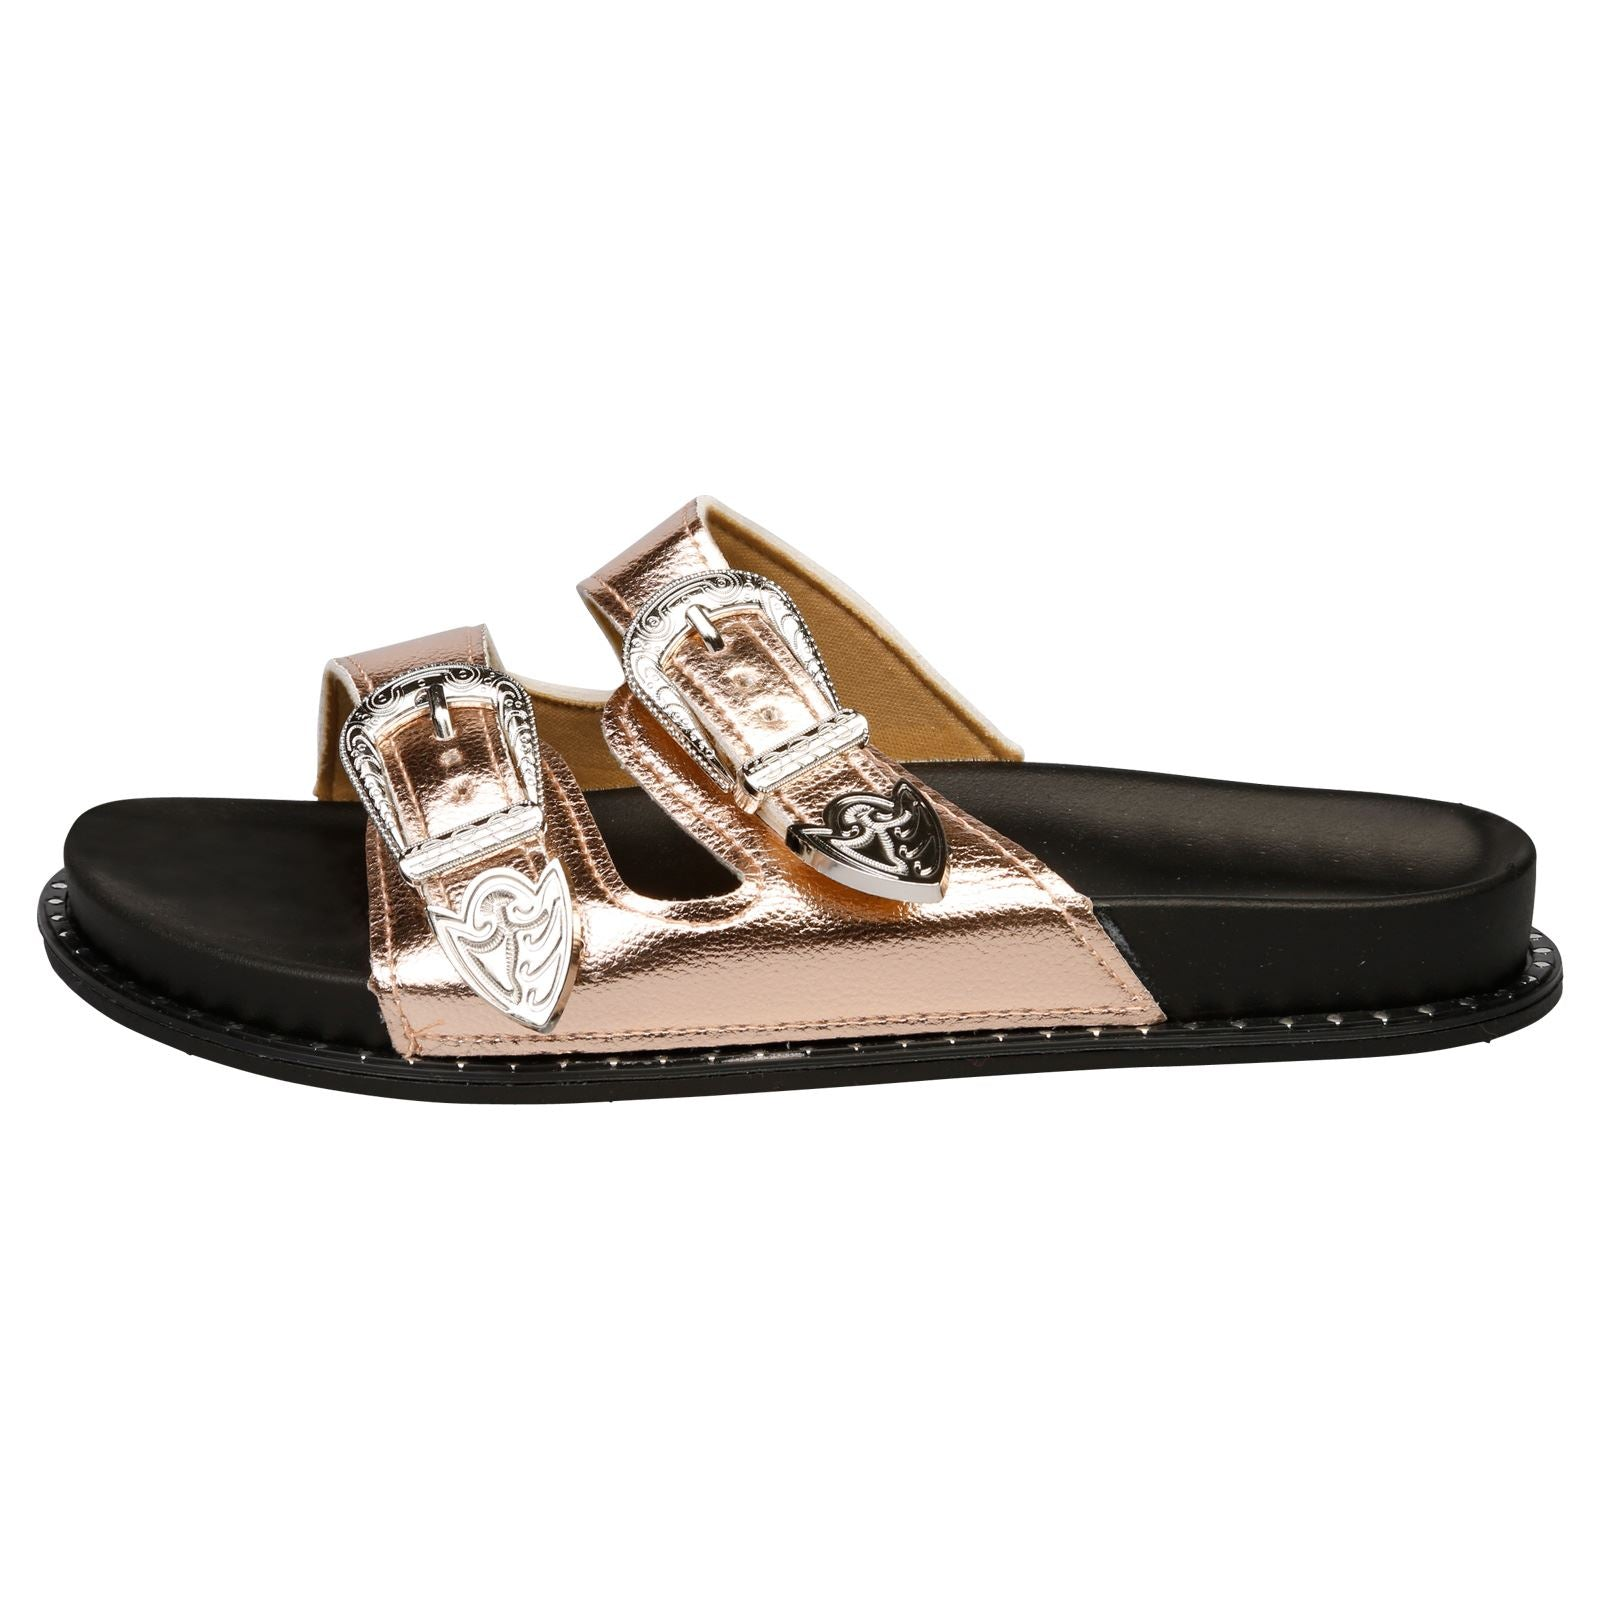 Harmoni Buckle Detail Flat Sandals in Chamagne - Feet First Fashion